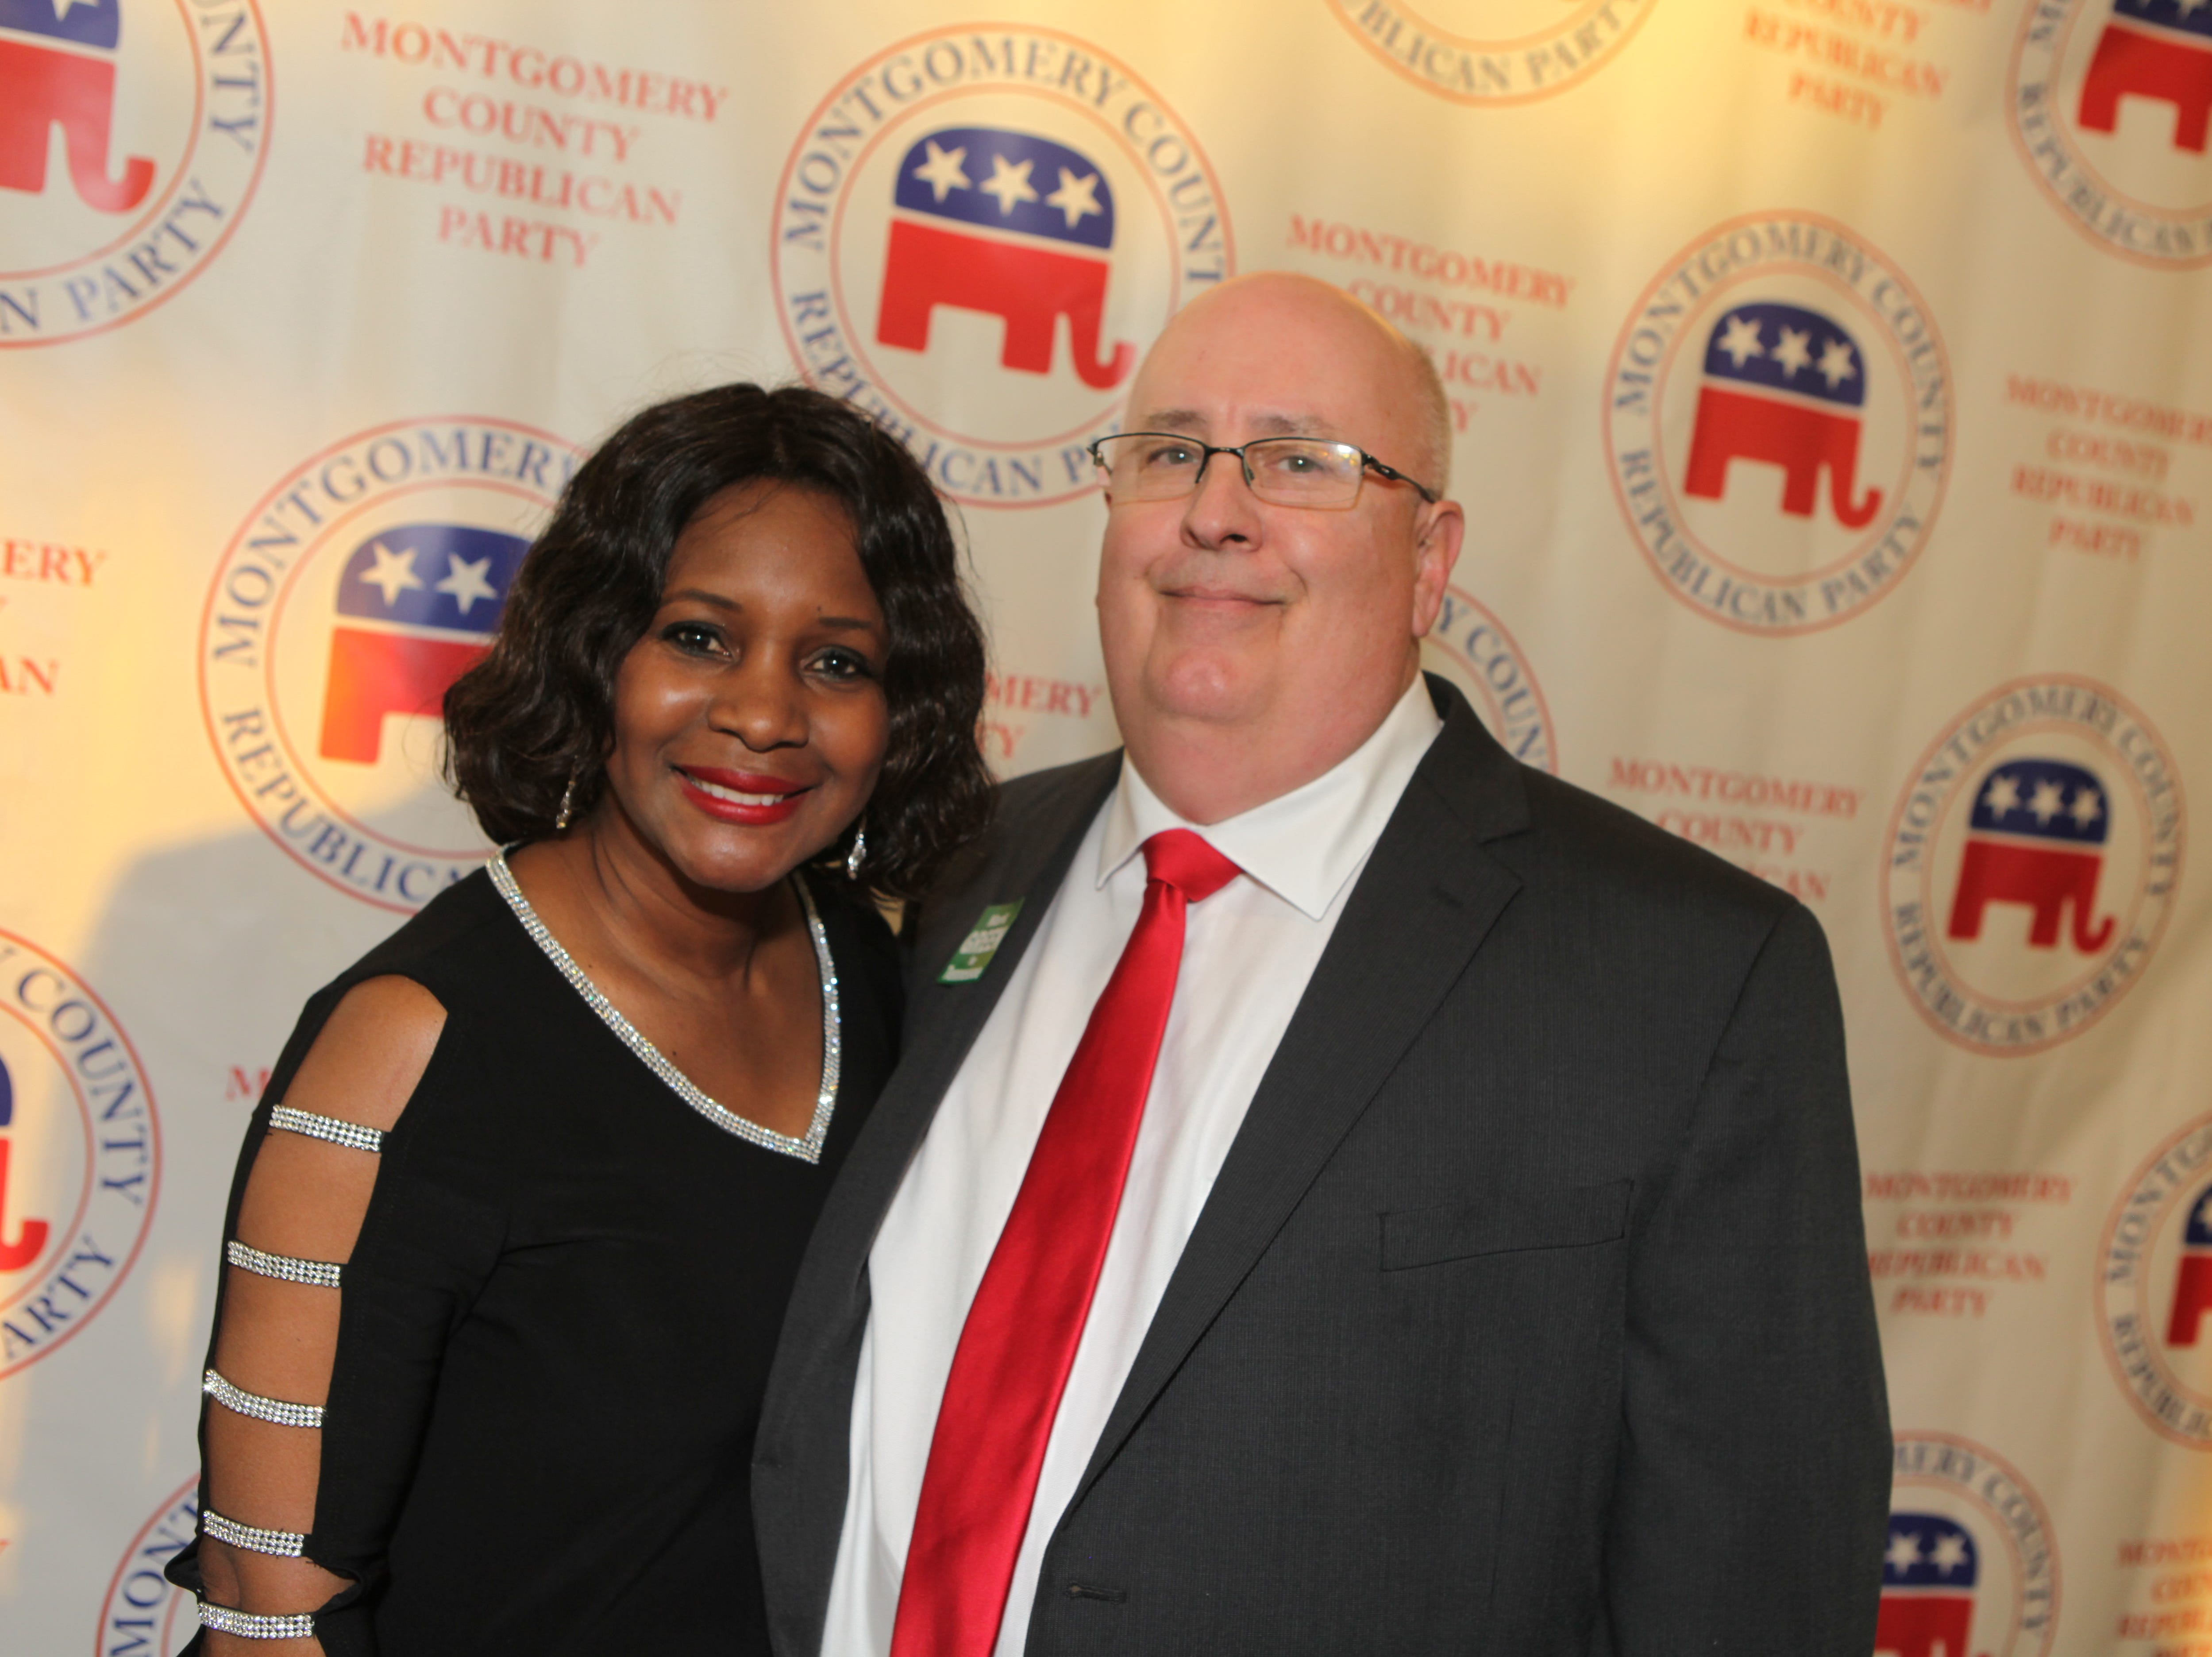 Corinthia and Lee Elder at the Montgomery County Republican Party Lincoln Reagan Dinner at Wilma Rudolph Event Center Friday, March 22, 2019.